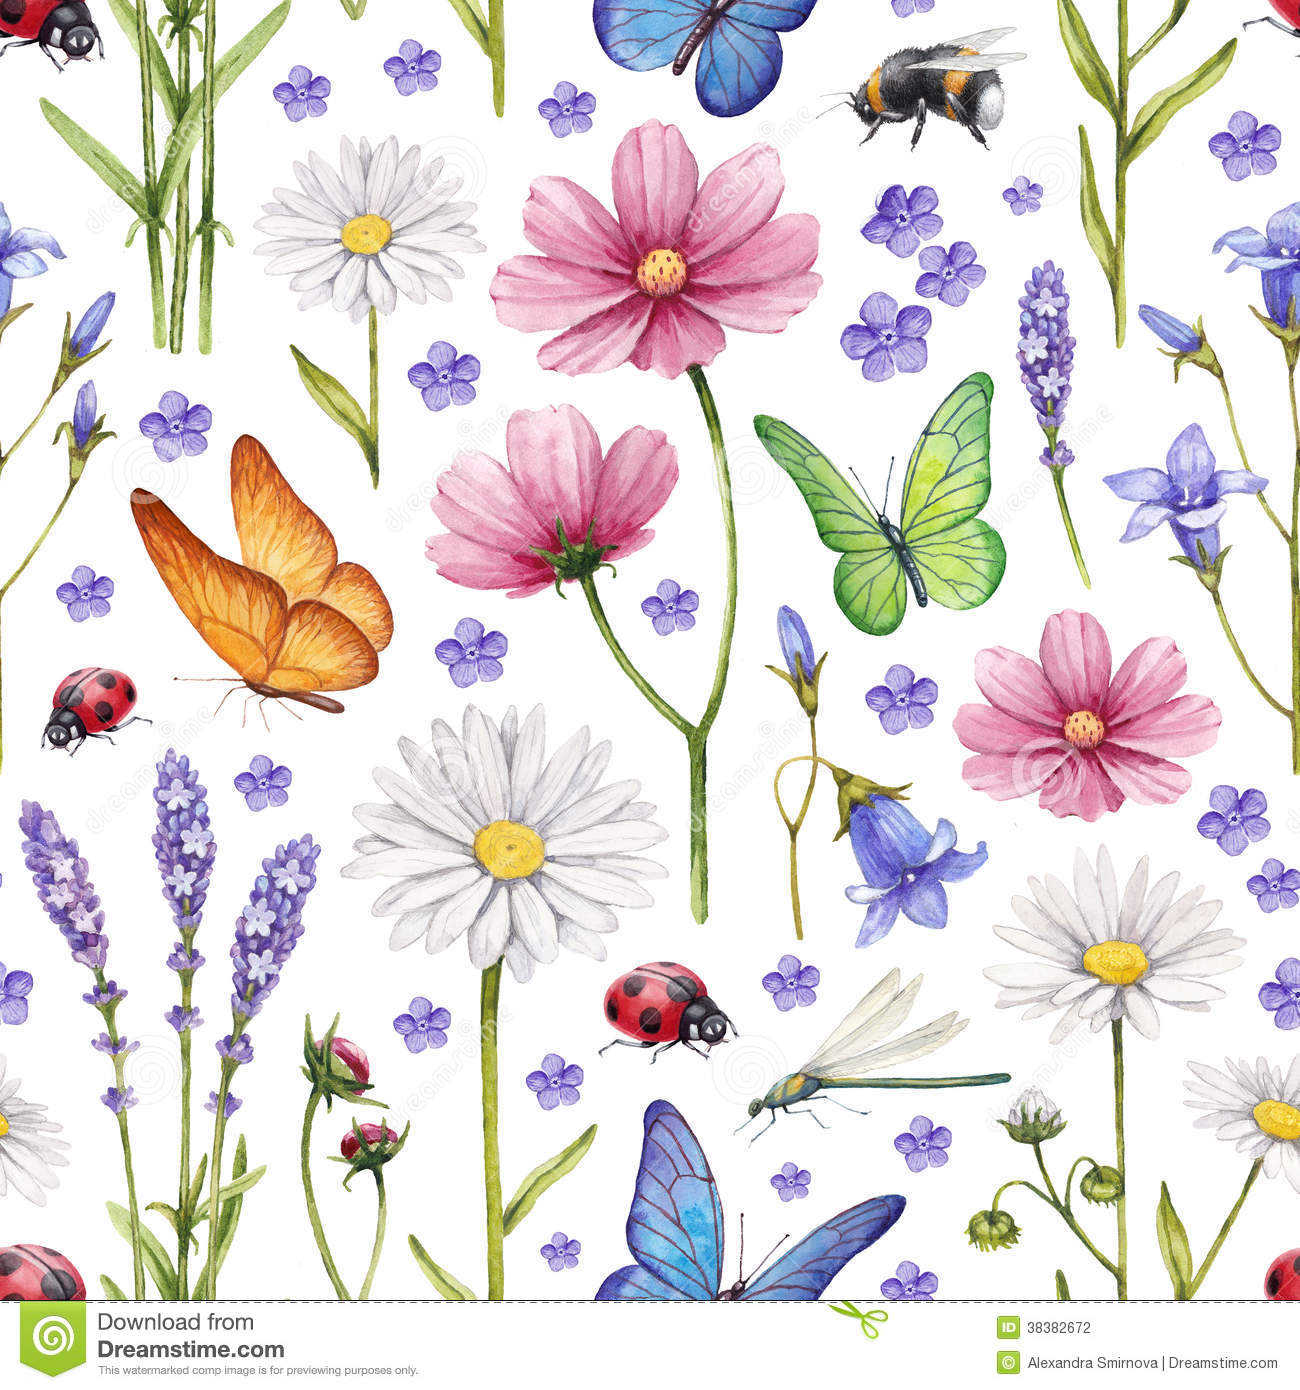 Wild flowers and insects illustration